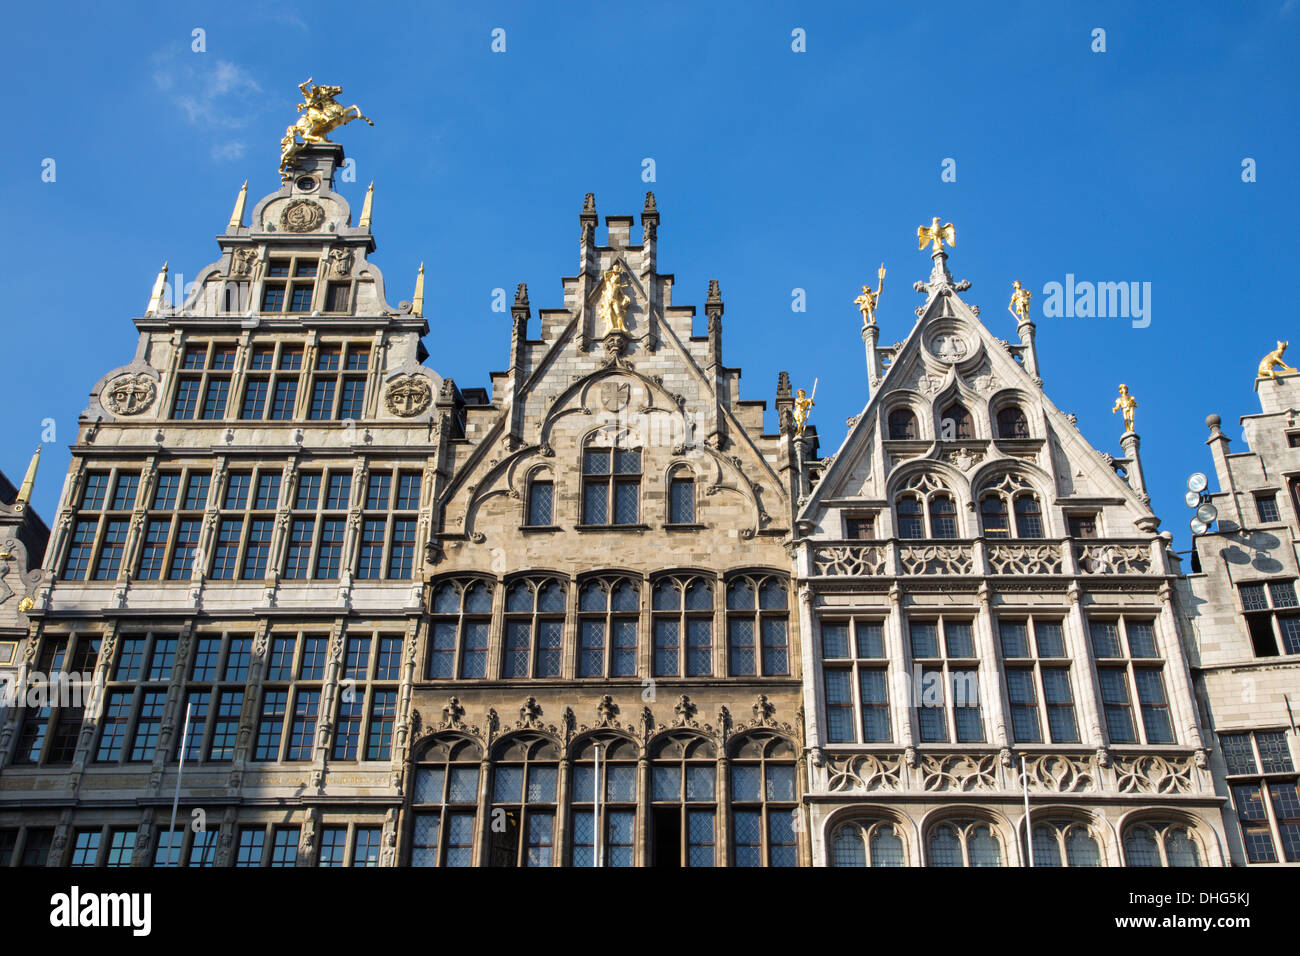 Antwerp - Palaces of Grote Markt Stock Photo